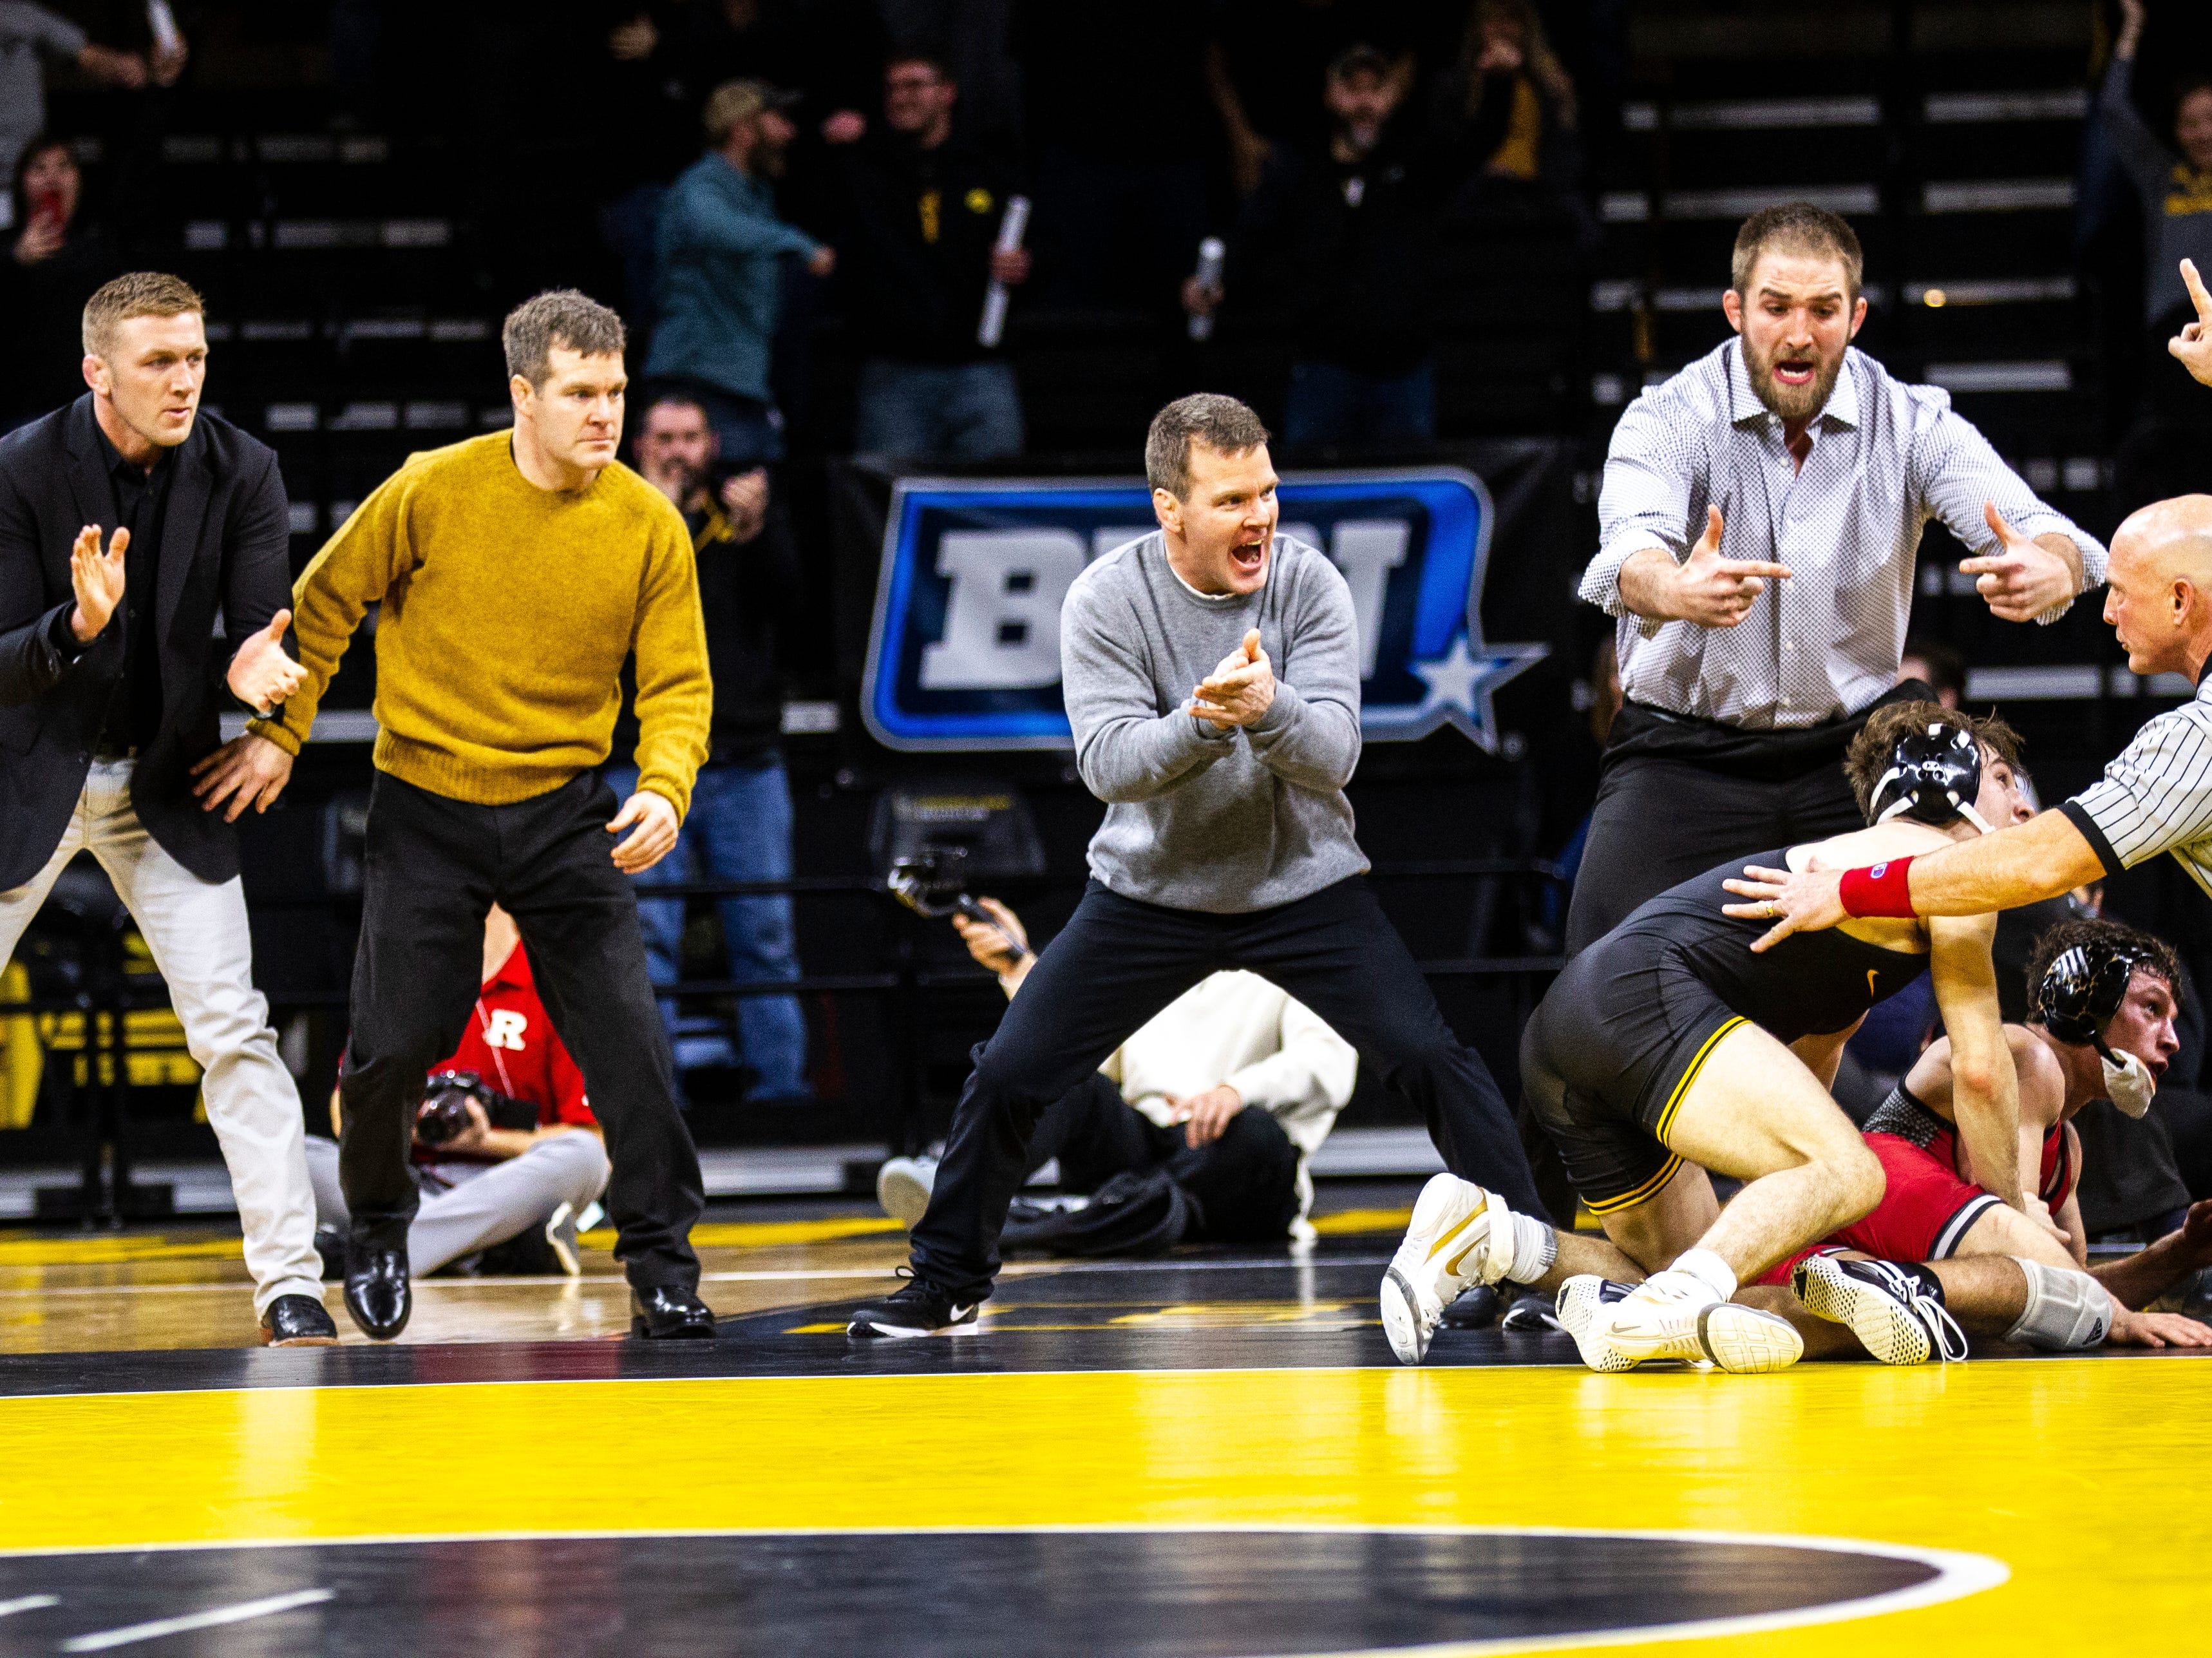 Iowa's Ryan Morningstar, head coach Tom Brands, Terry Brands, and Bobby Telford celebrate after Iowa's Austin DeSanto scored a takedown on Rutgers' Nick Suriano at 133 during a NCAA Big Ten Conference wrestling dual on Friday, Jan. 18, 2019, at Carver-Hawkeye Arena in Iowa City, Iowa.